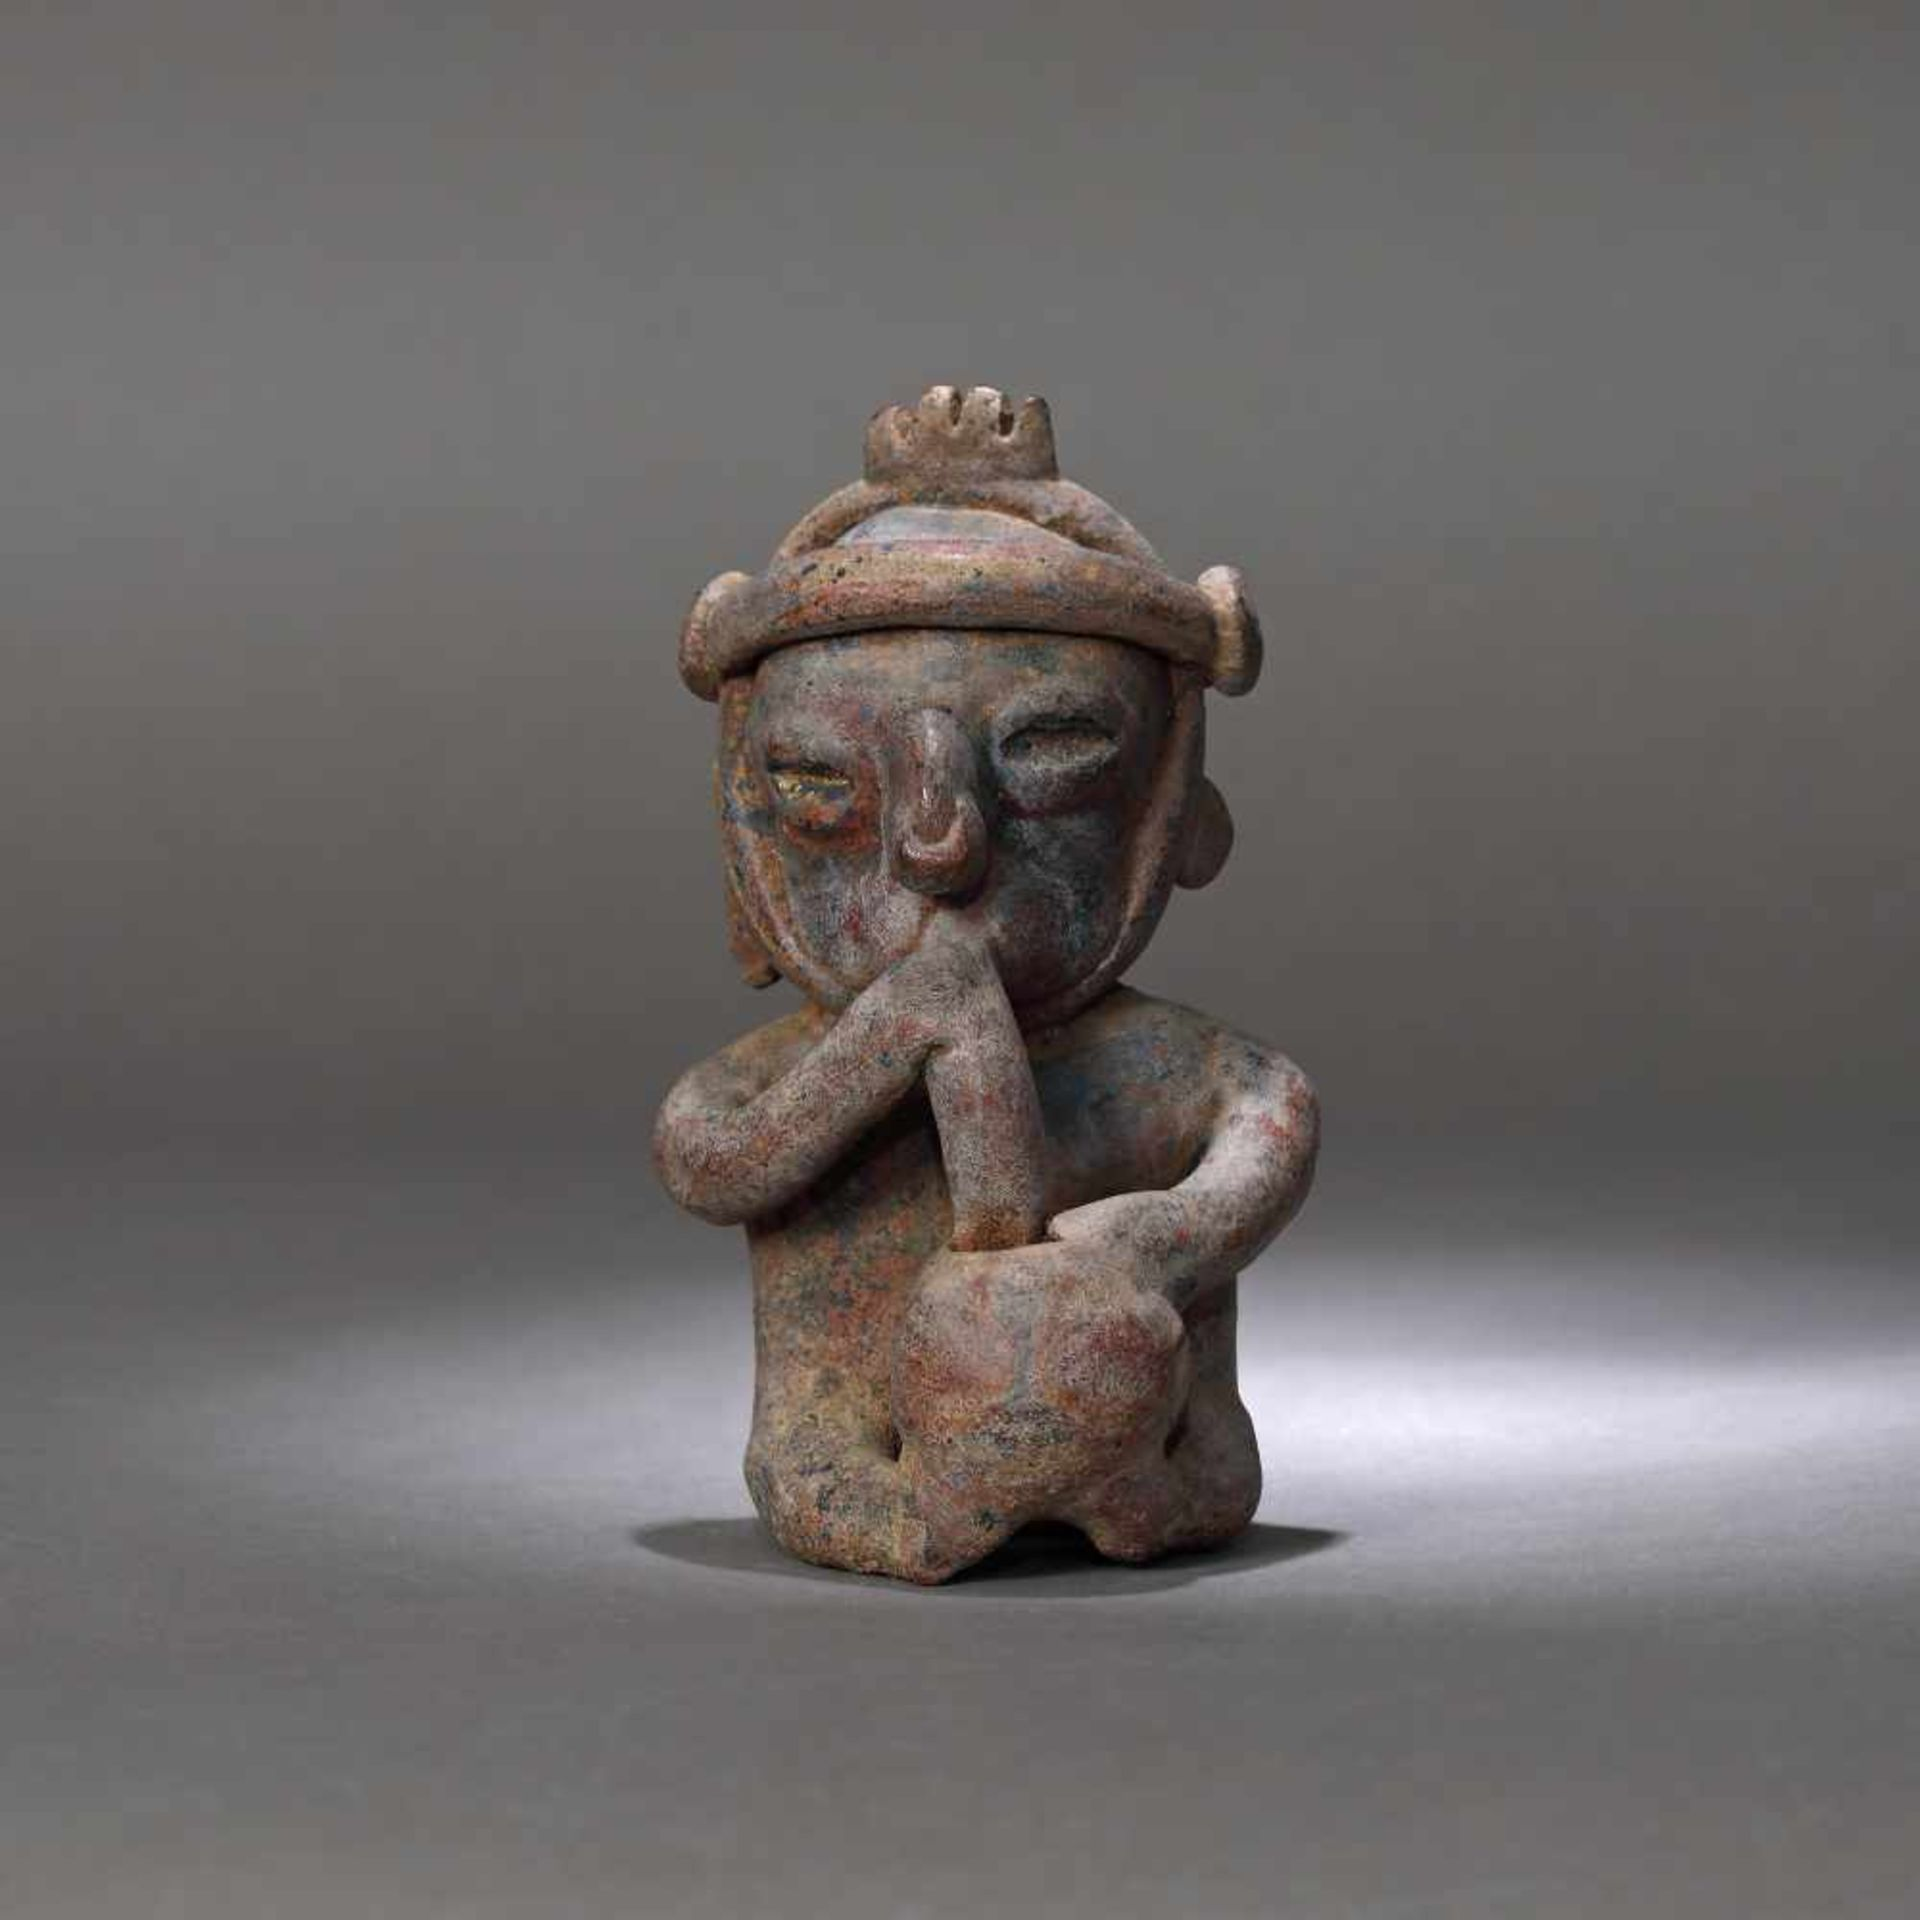 Ceramic figurine depicting a man smoking, Colima culture, Mexico, approx. 2,000 years old, 1st centu